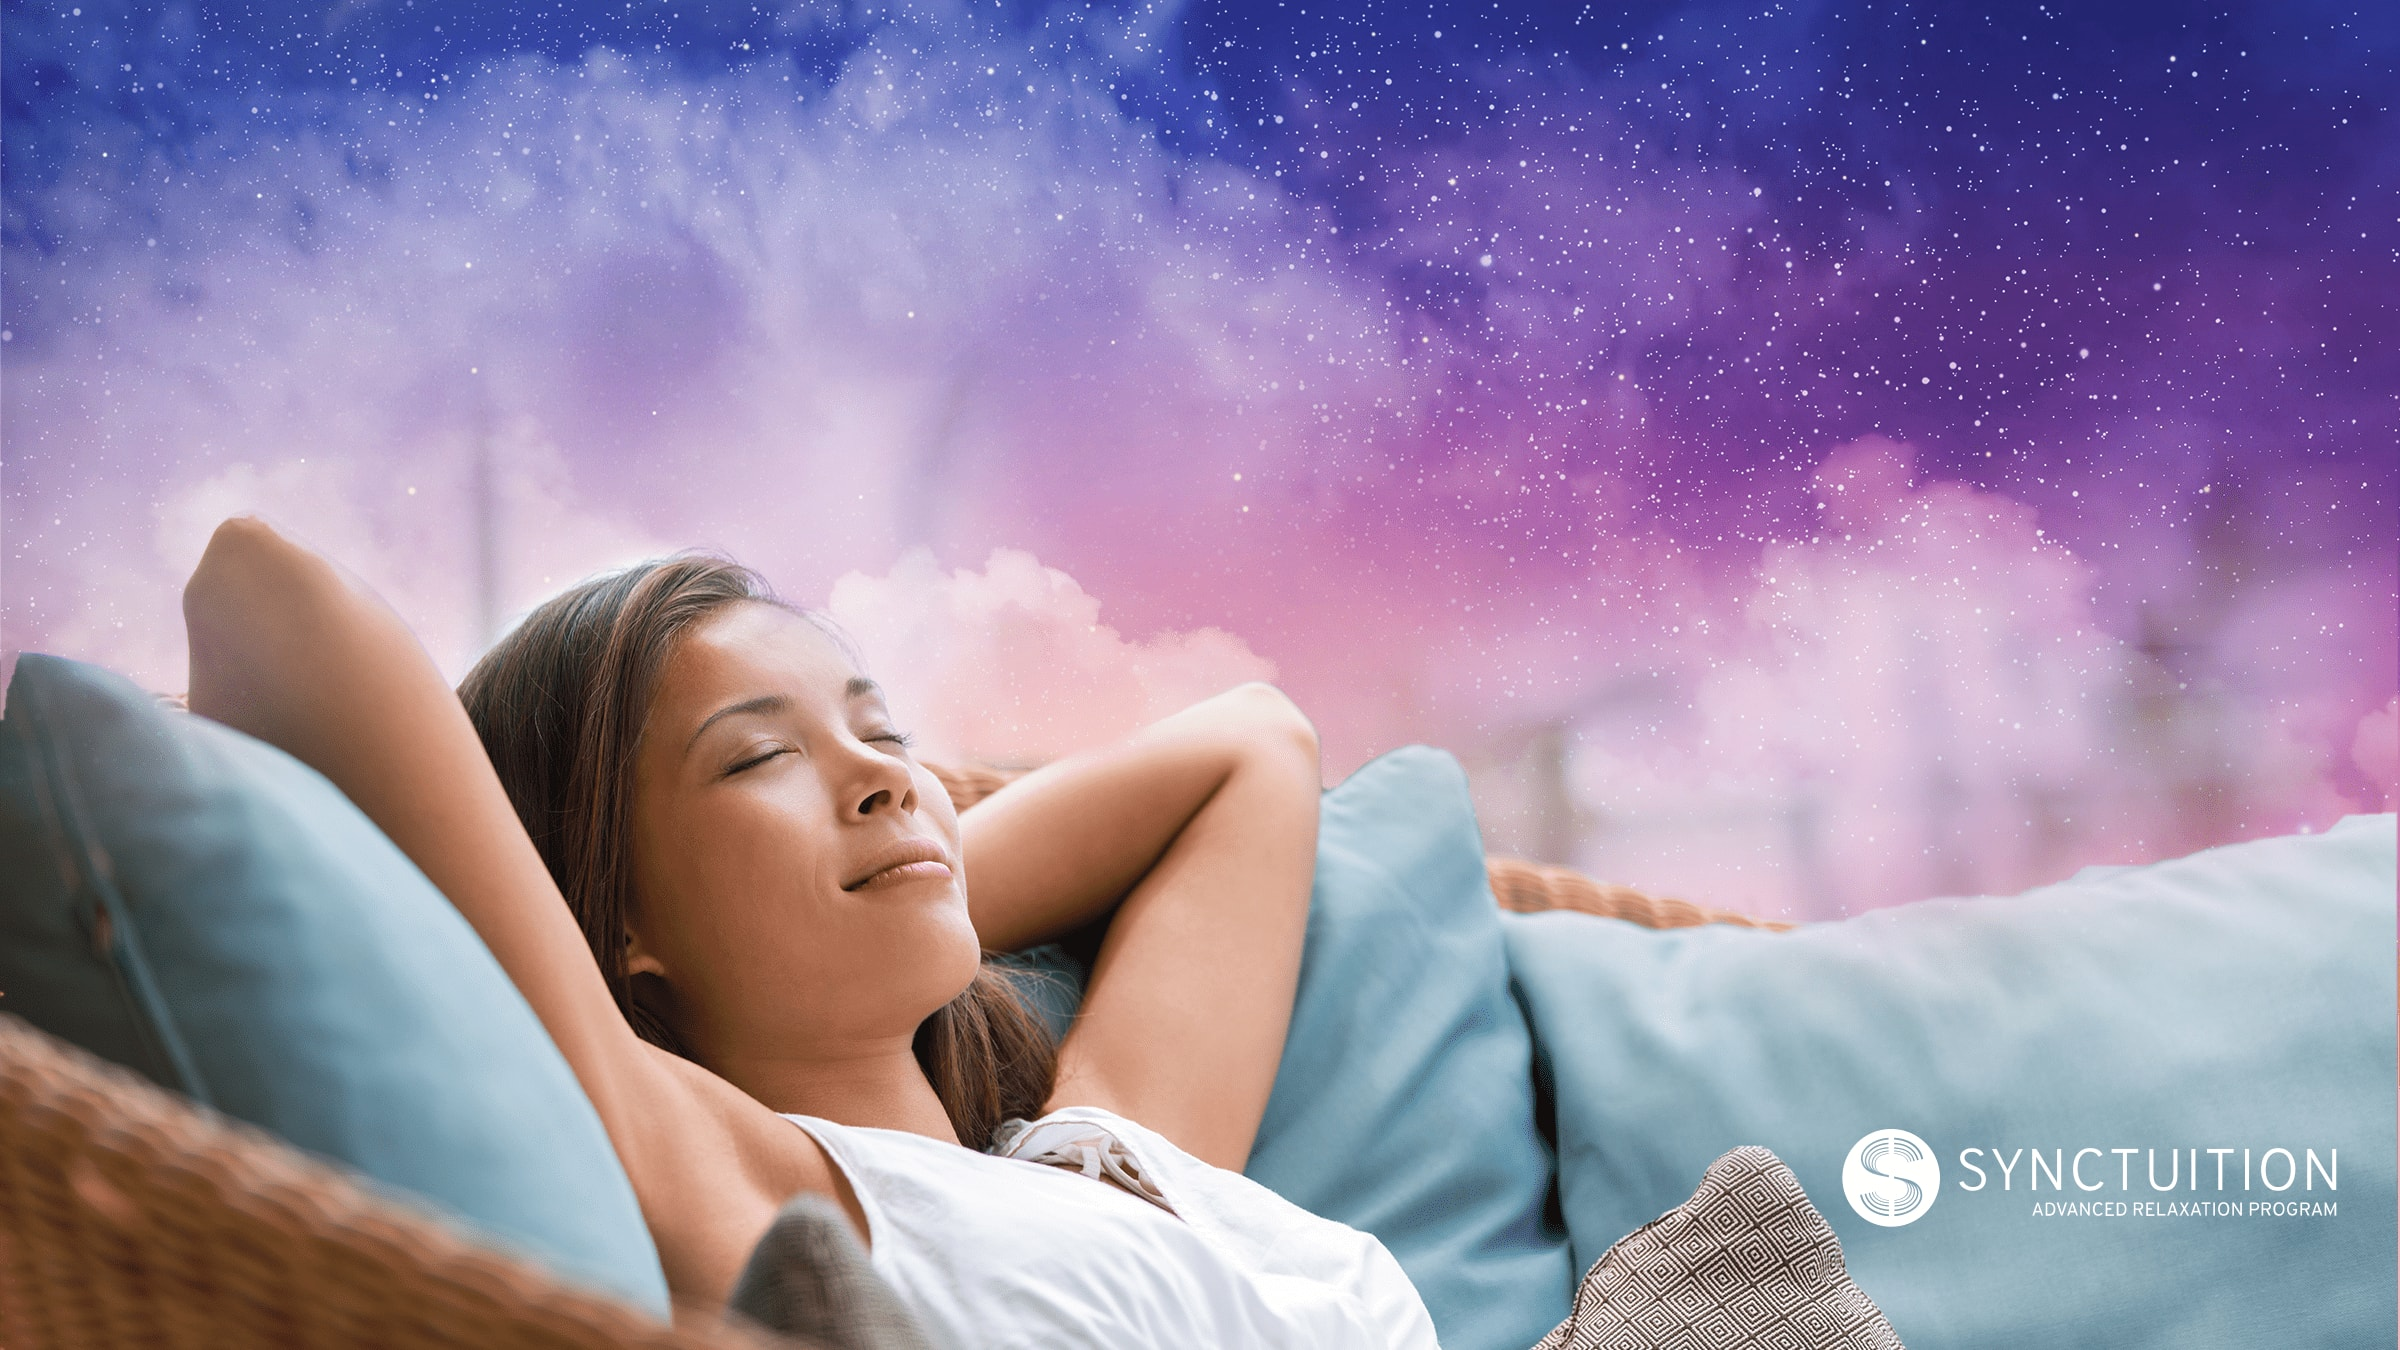 Synctuition combines 3D sounds and mindfulness meditation to ease anxiety-induced insomnia.